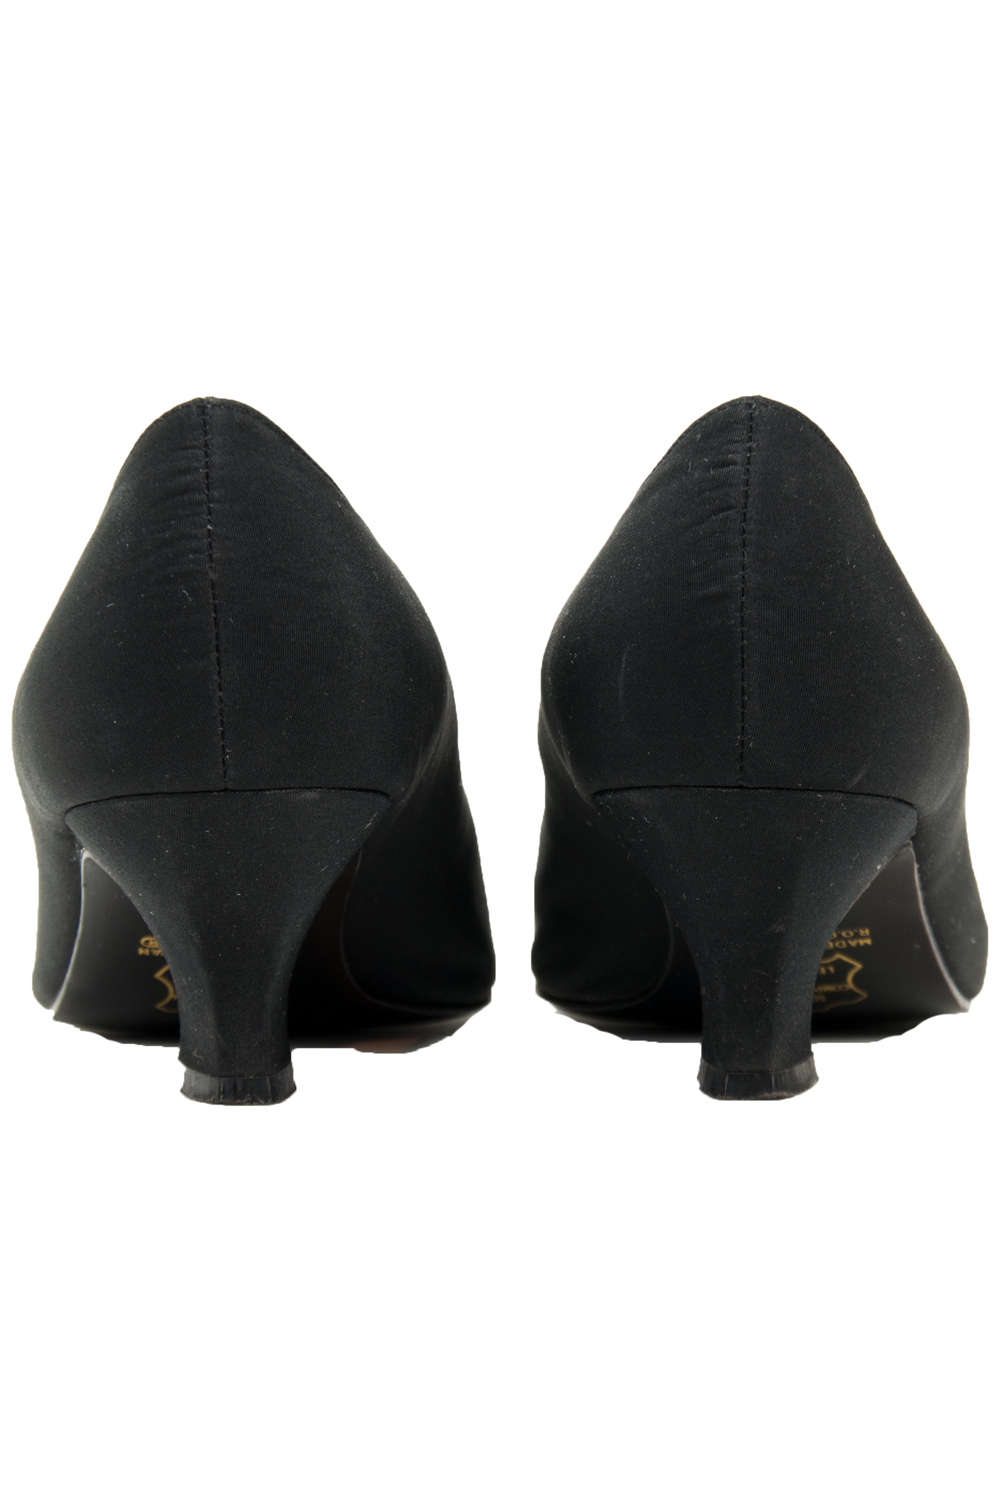 Vintage black kitten heels with scalloped edge - back view.